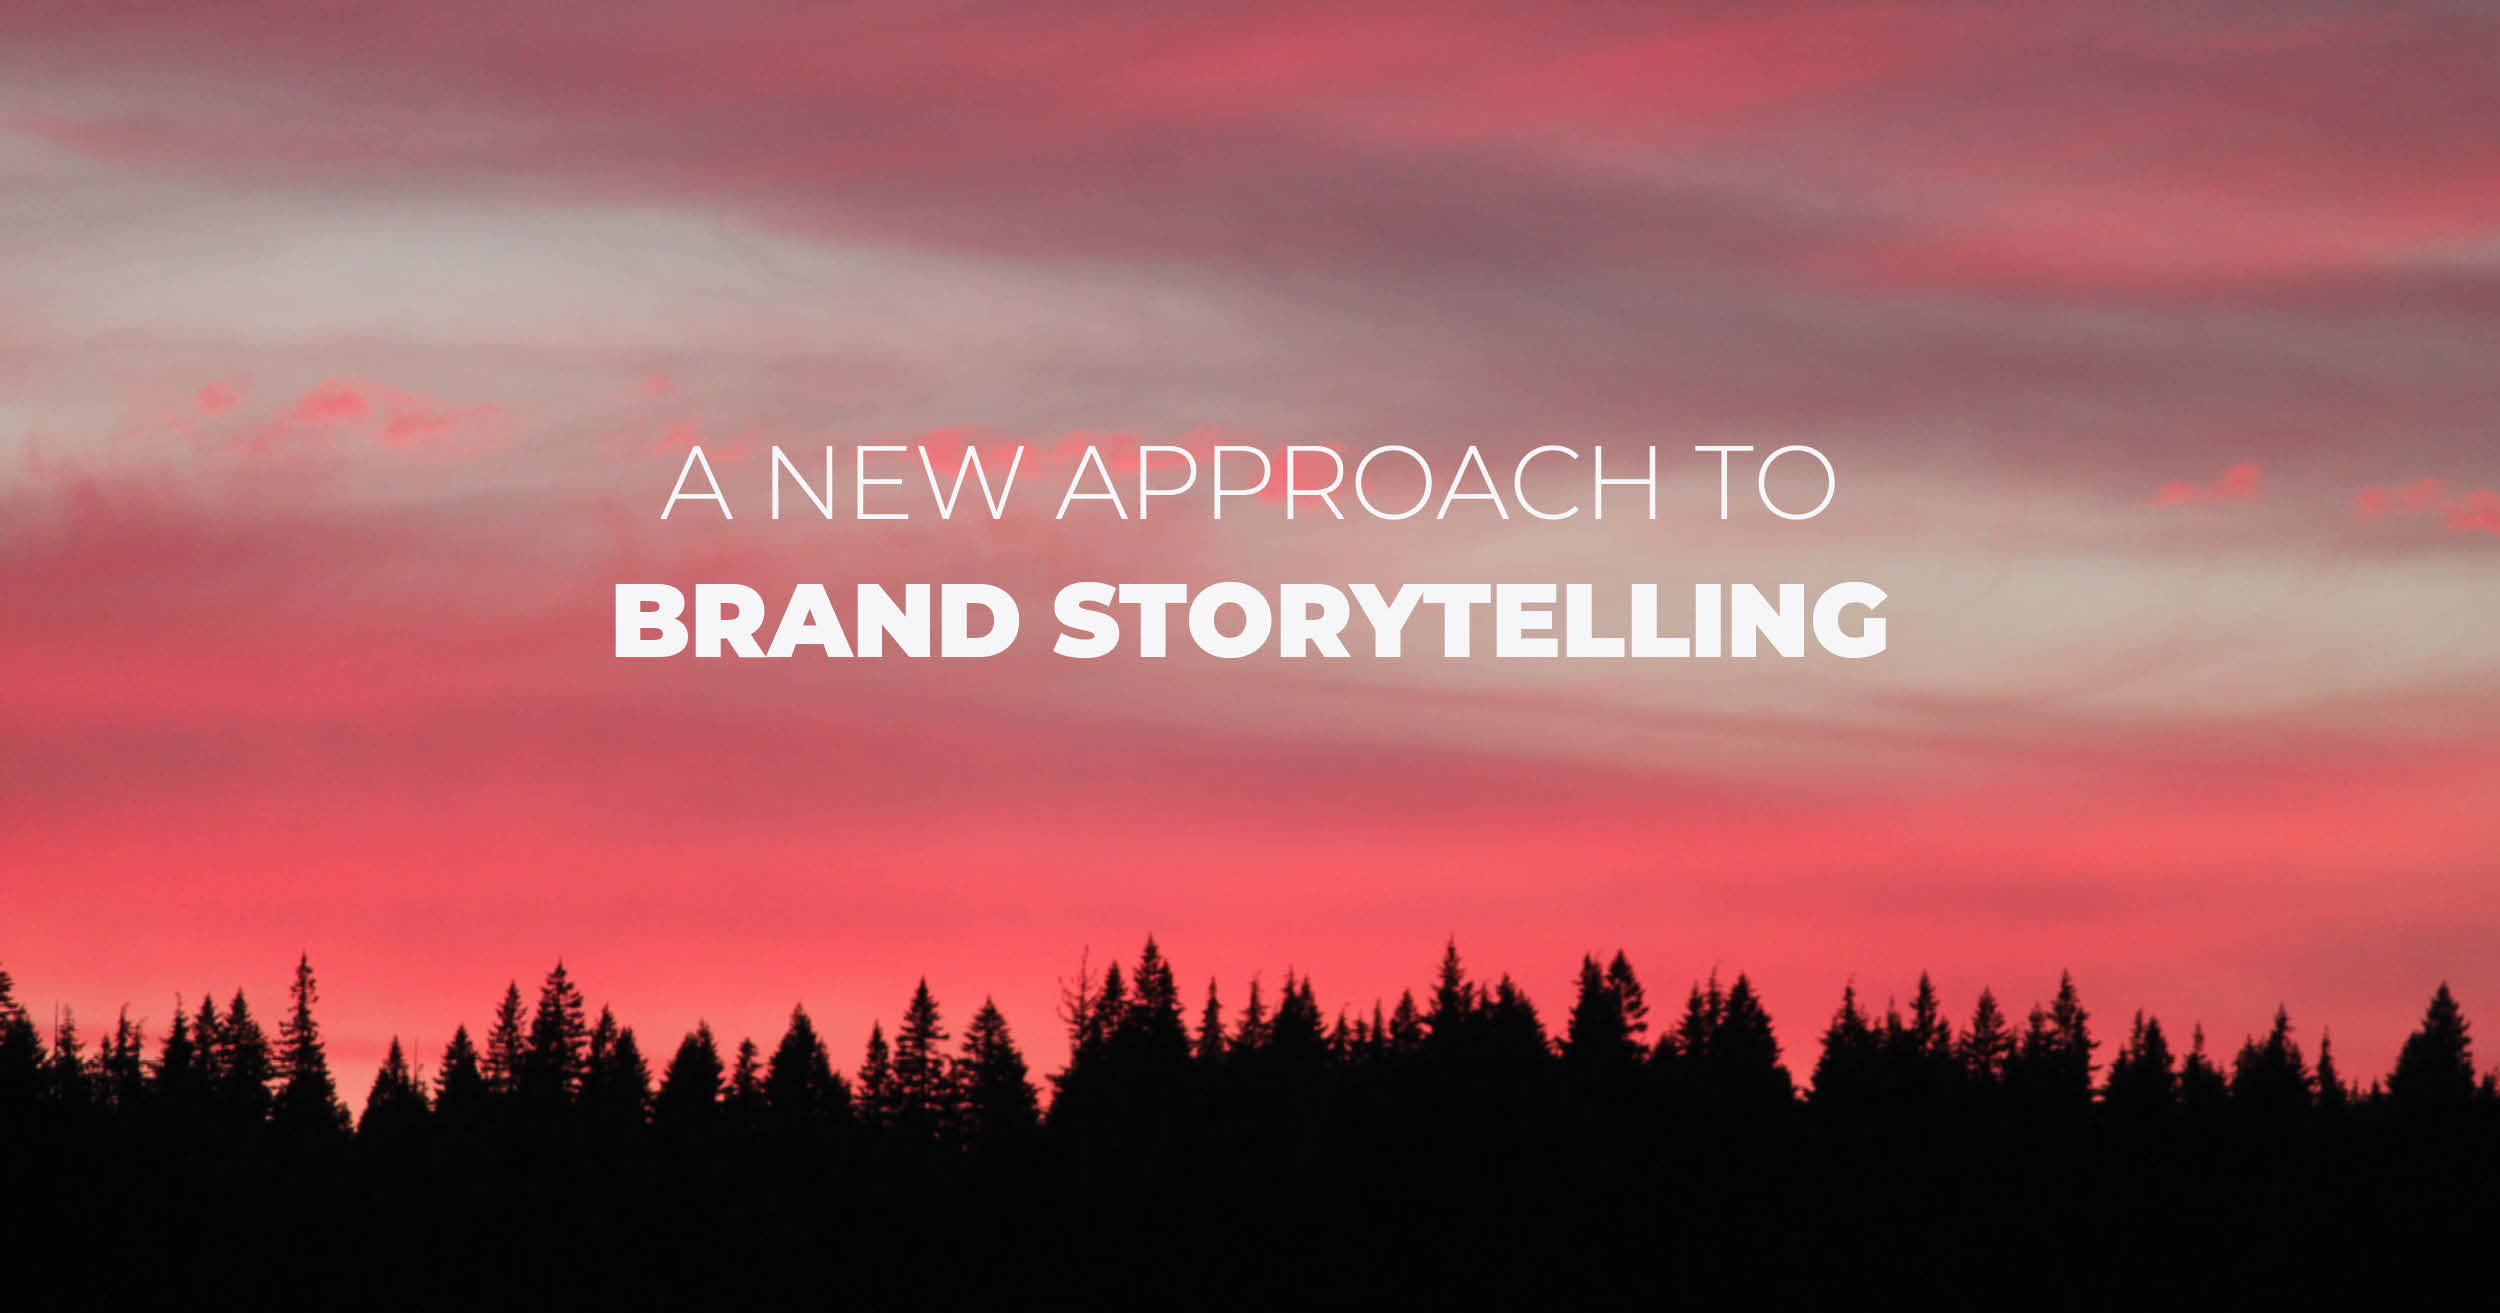 A New Approach To Brand Storytelling